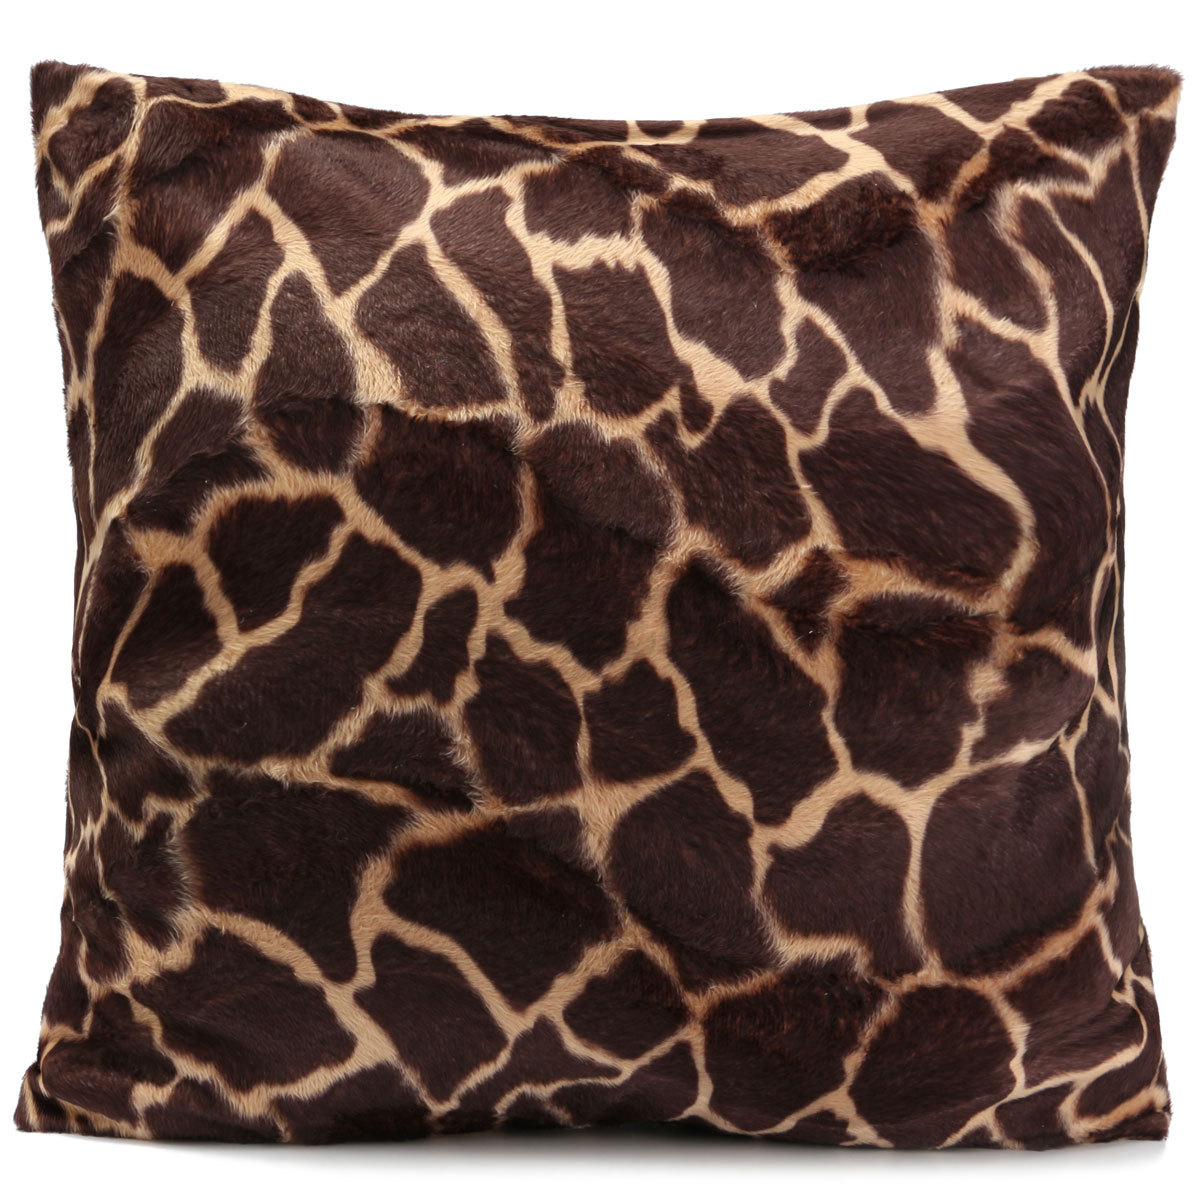 leopard print sofa appears loose covers for sofas uk animal zebra pillow case waist throw